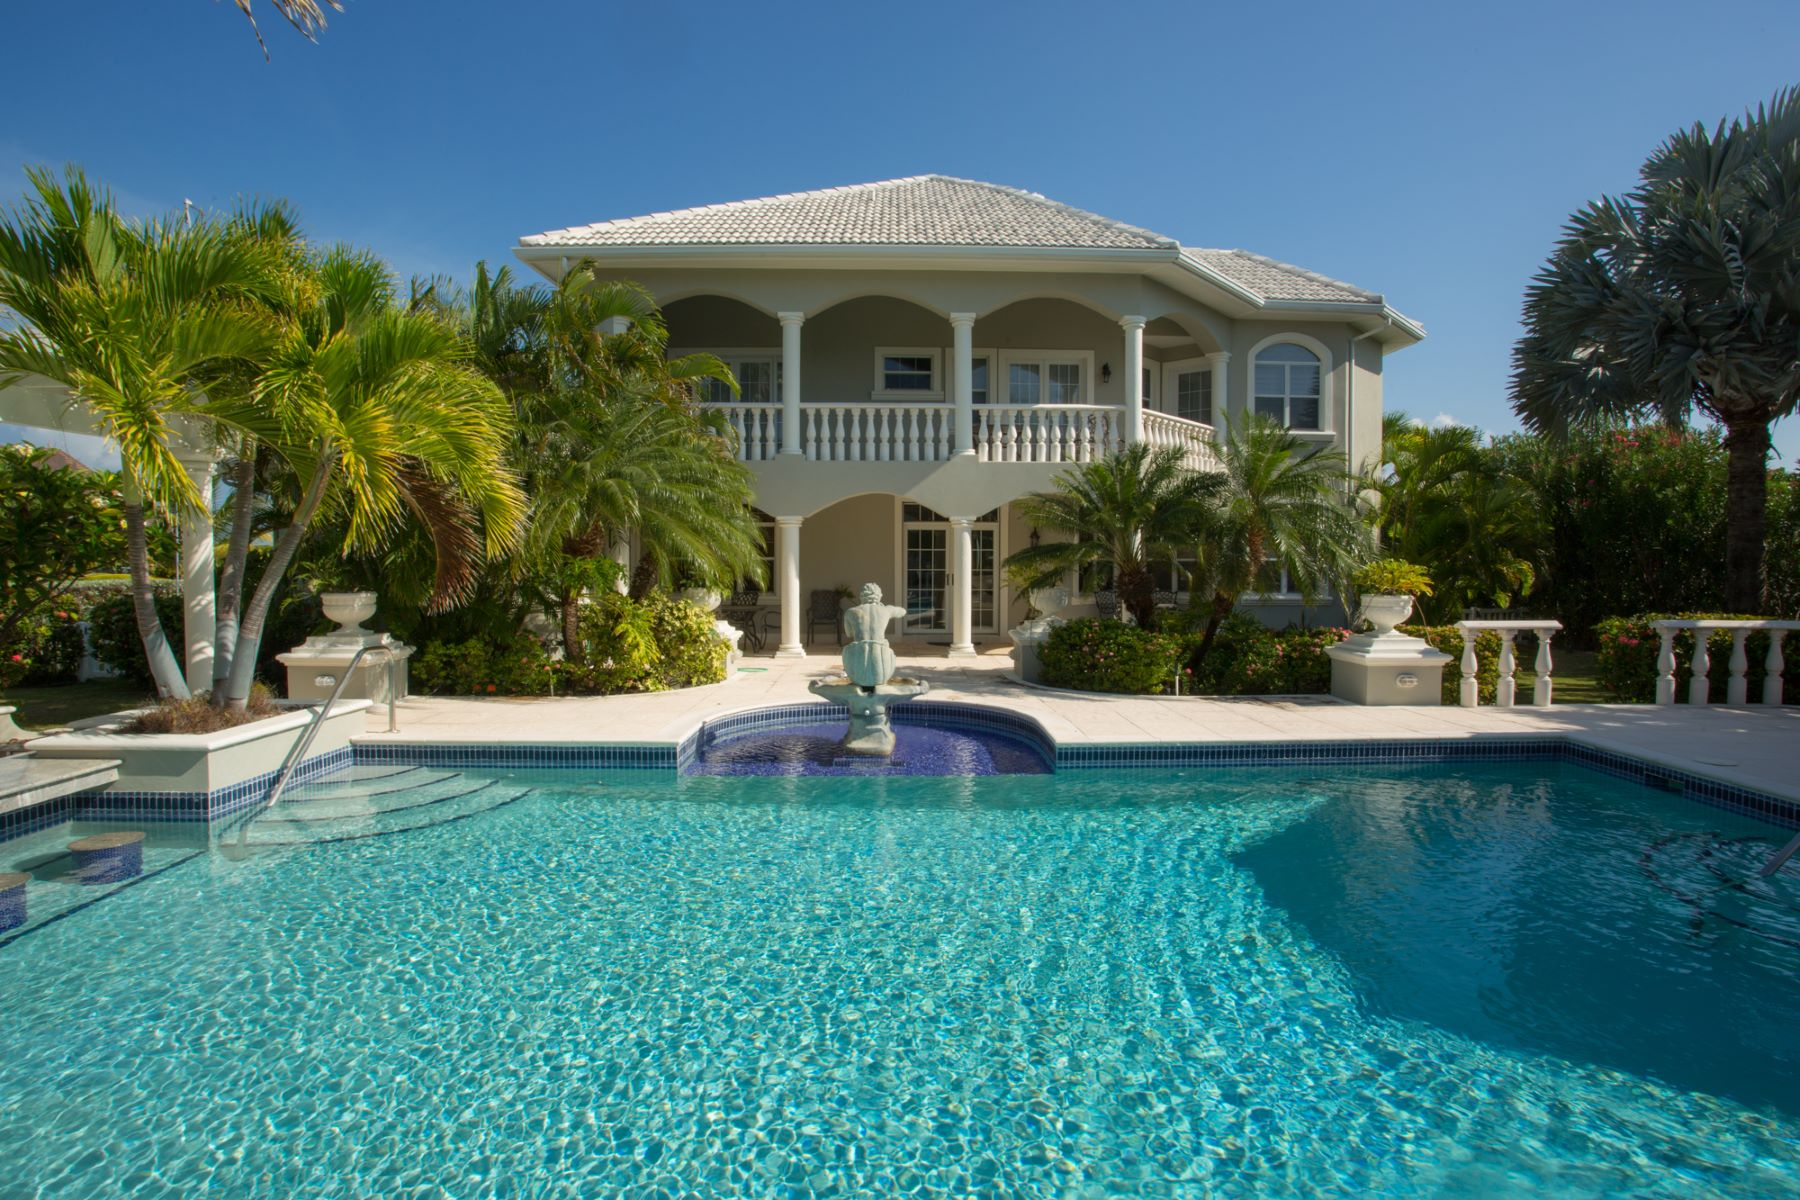 Single Family Home for Sale at Canal front luxury home Shoreview Point 73 The Shores West Bay, KY1 Cayman Islands